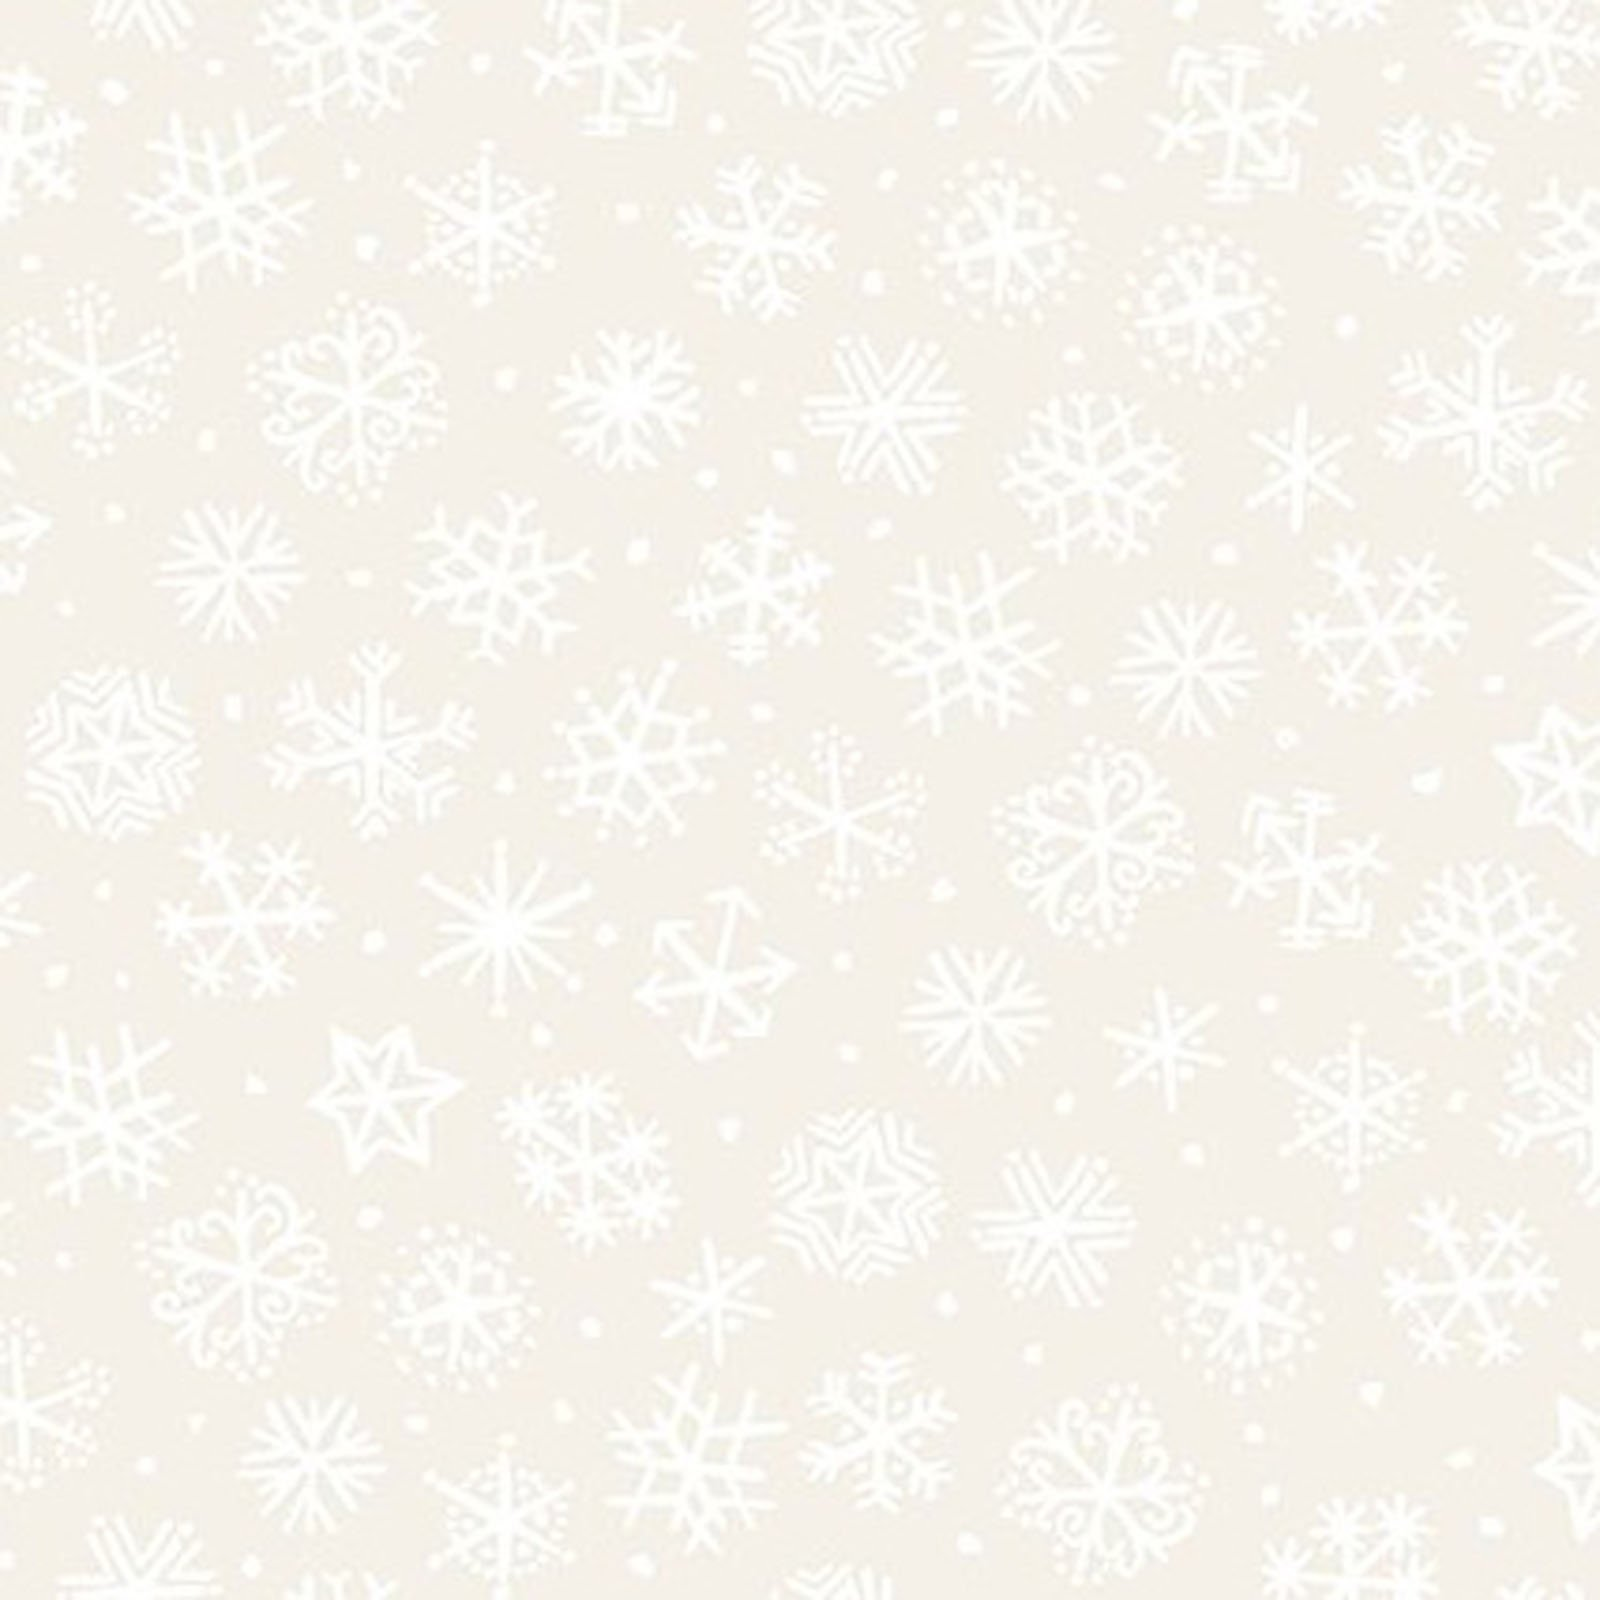 INTH-11JPL 1 - SNOWY BY JULIE PASCHKIS SMALL SNOWFLAKES CREAM - AVAILABLE TO ORDER